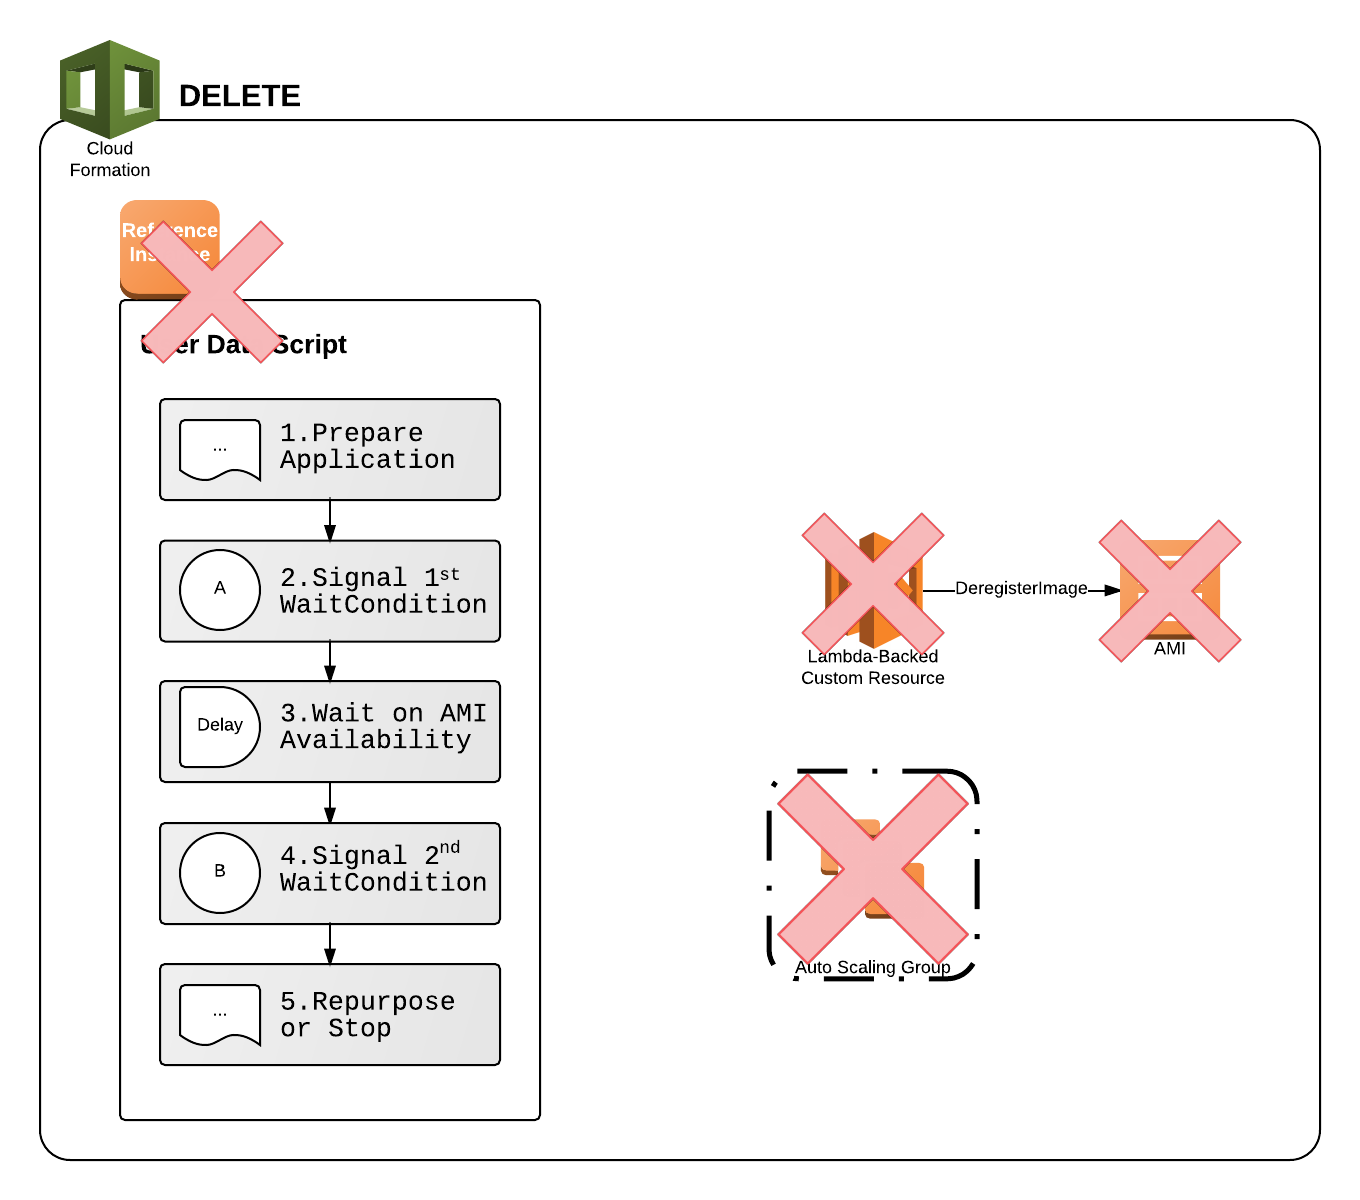 Visualization of AMIManager Custom Resource deletion process